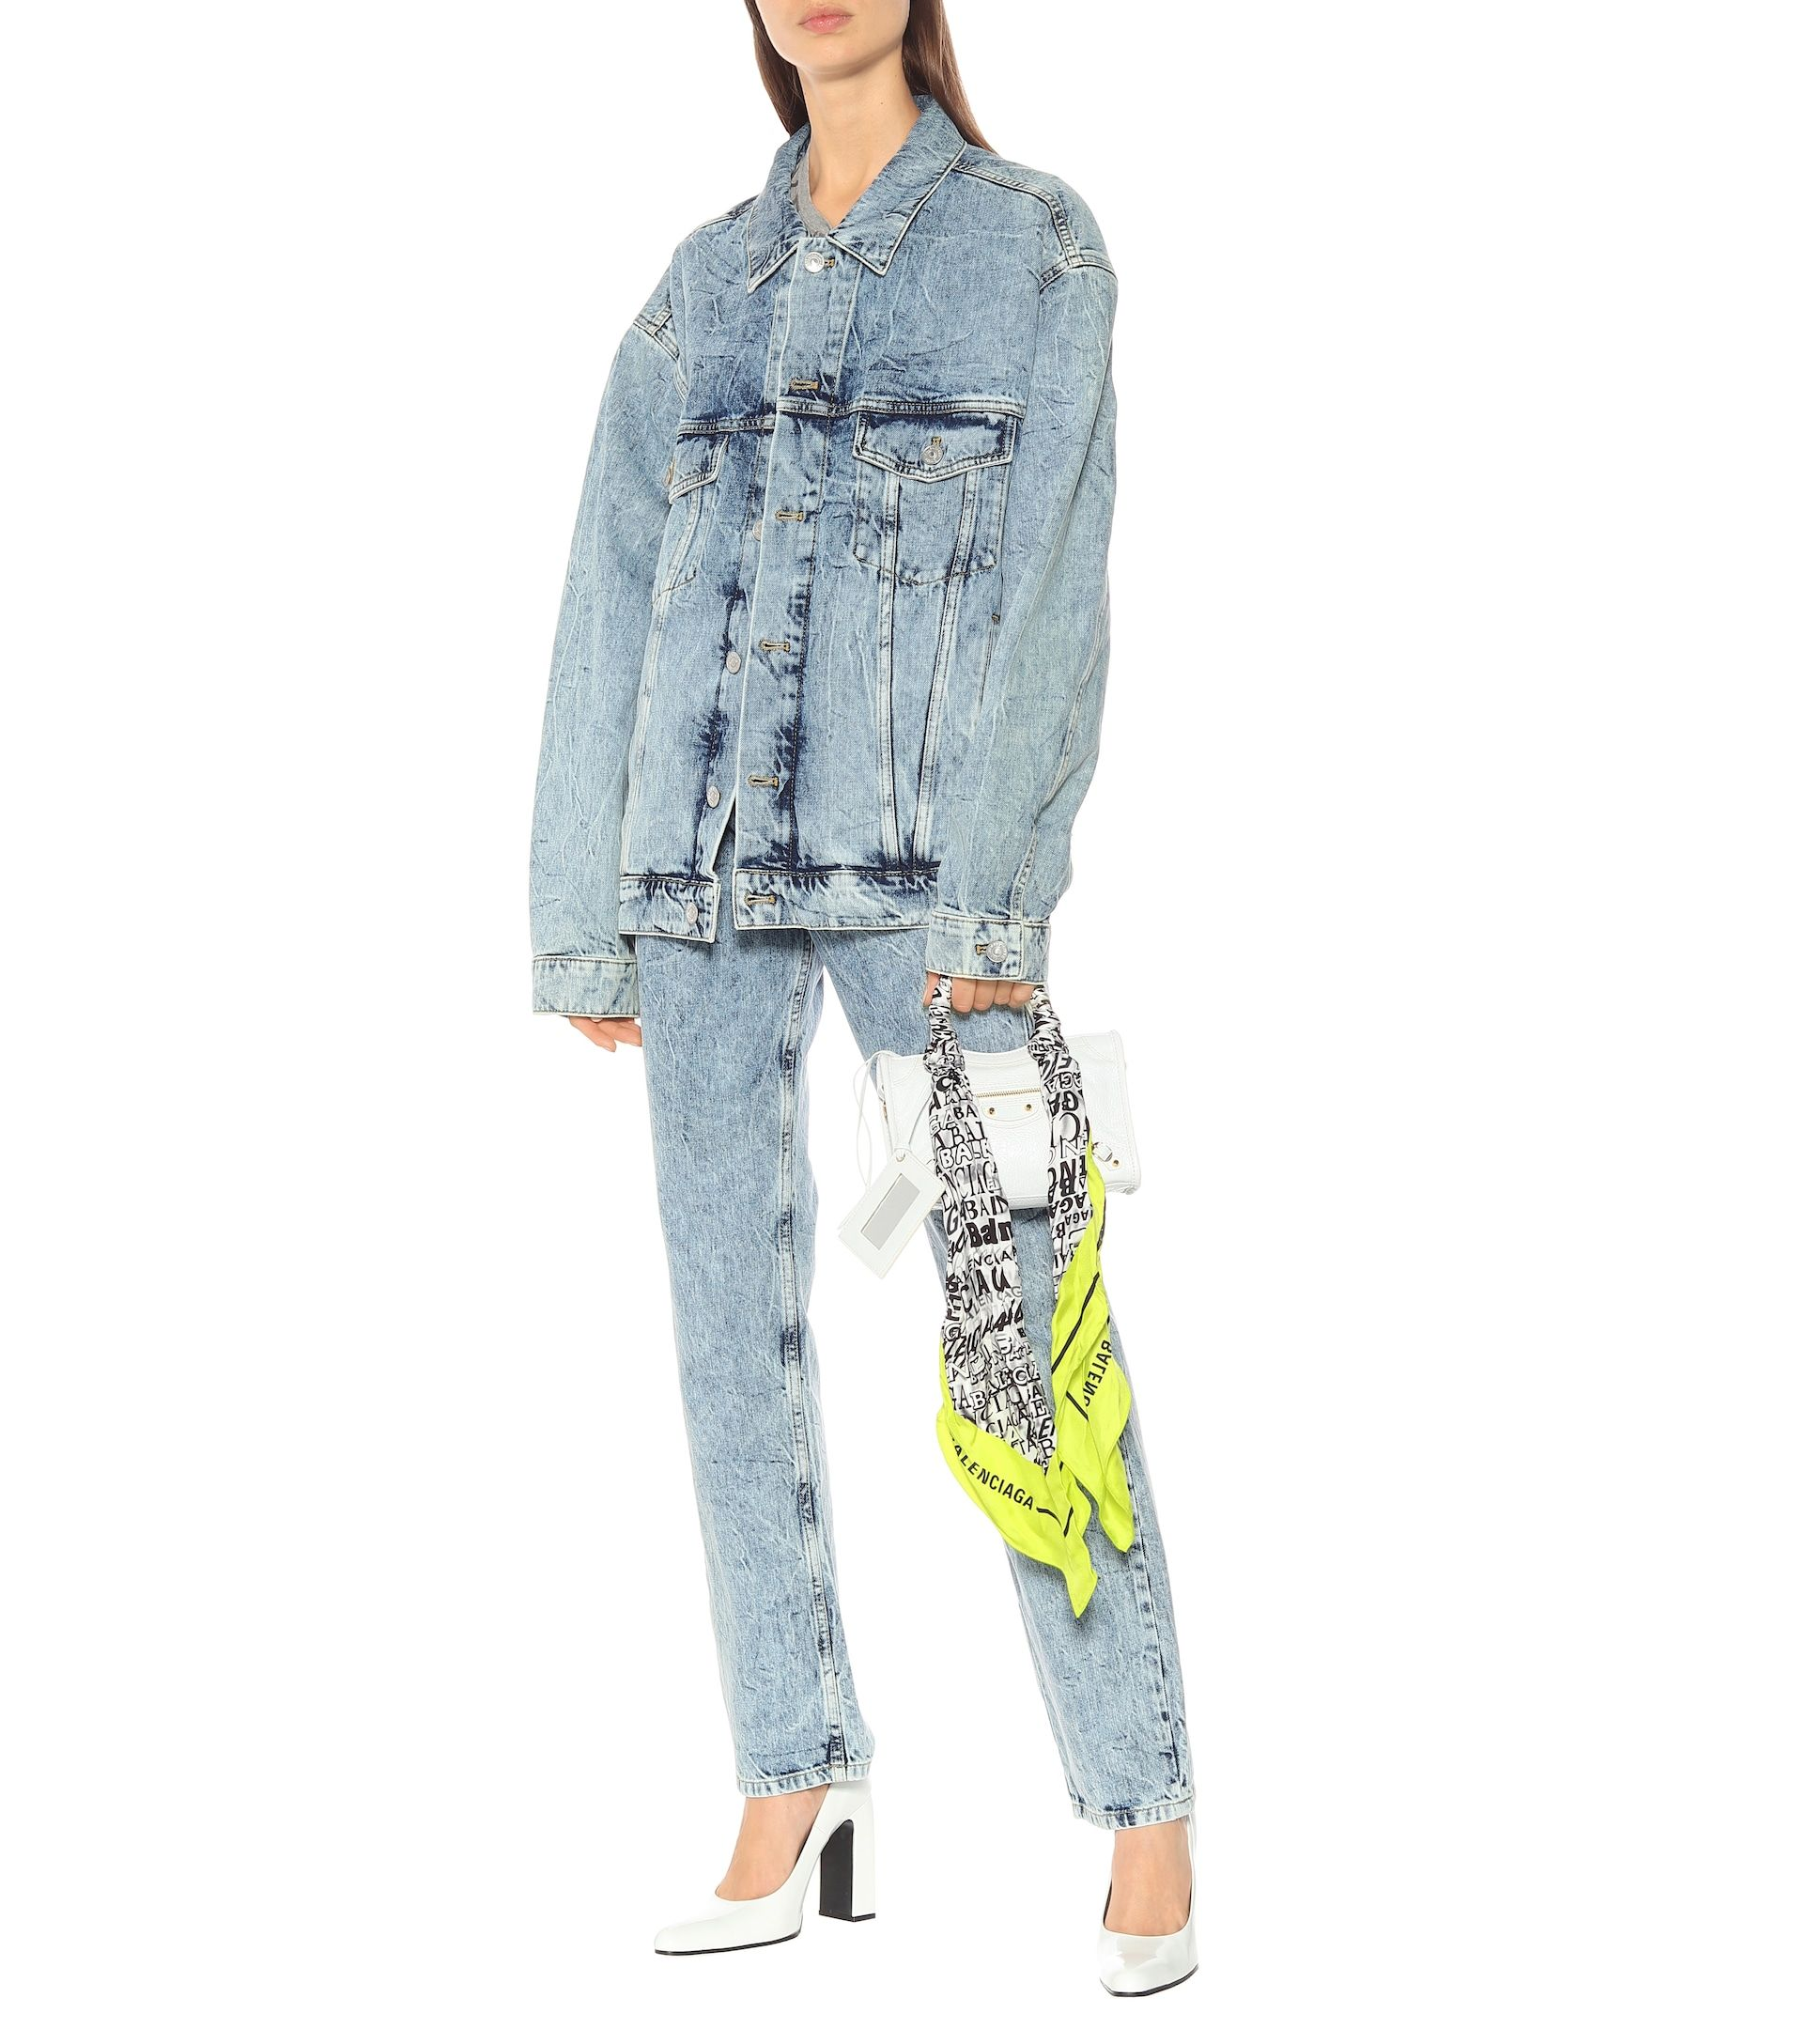 balenciaga-vintage-wash-denim-canadian-tuxedo-fall-2019